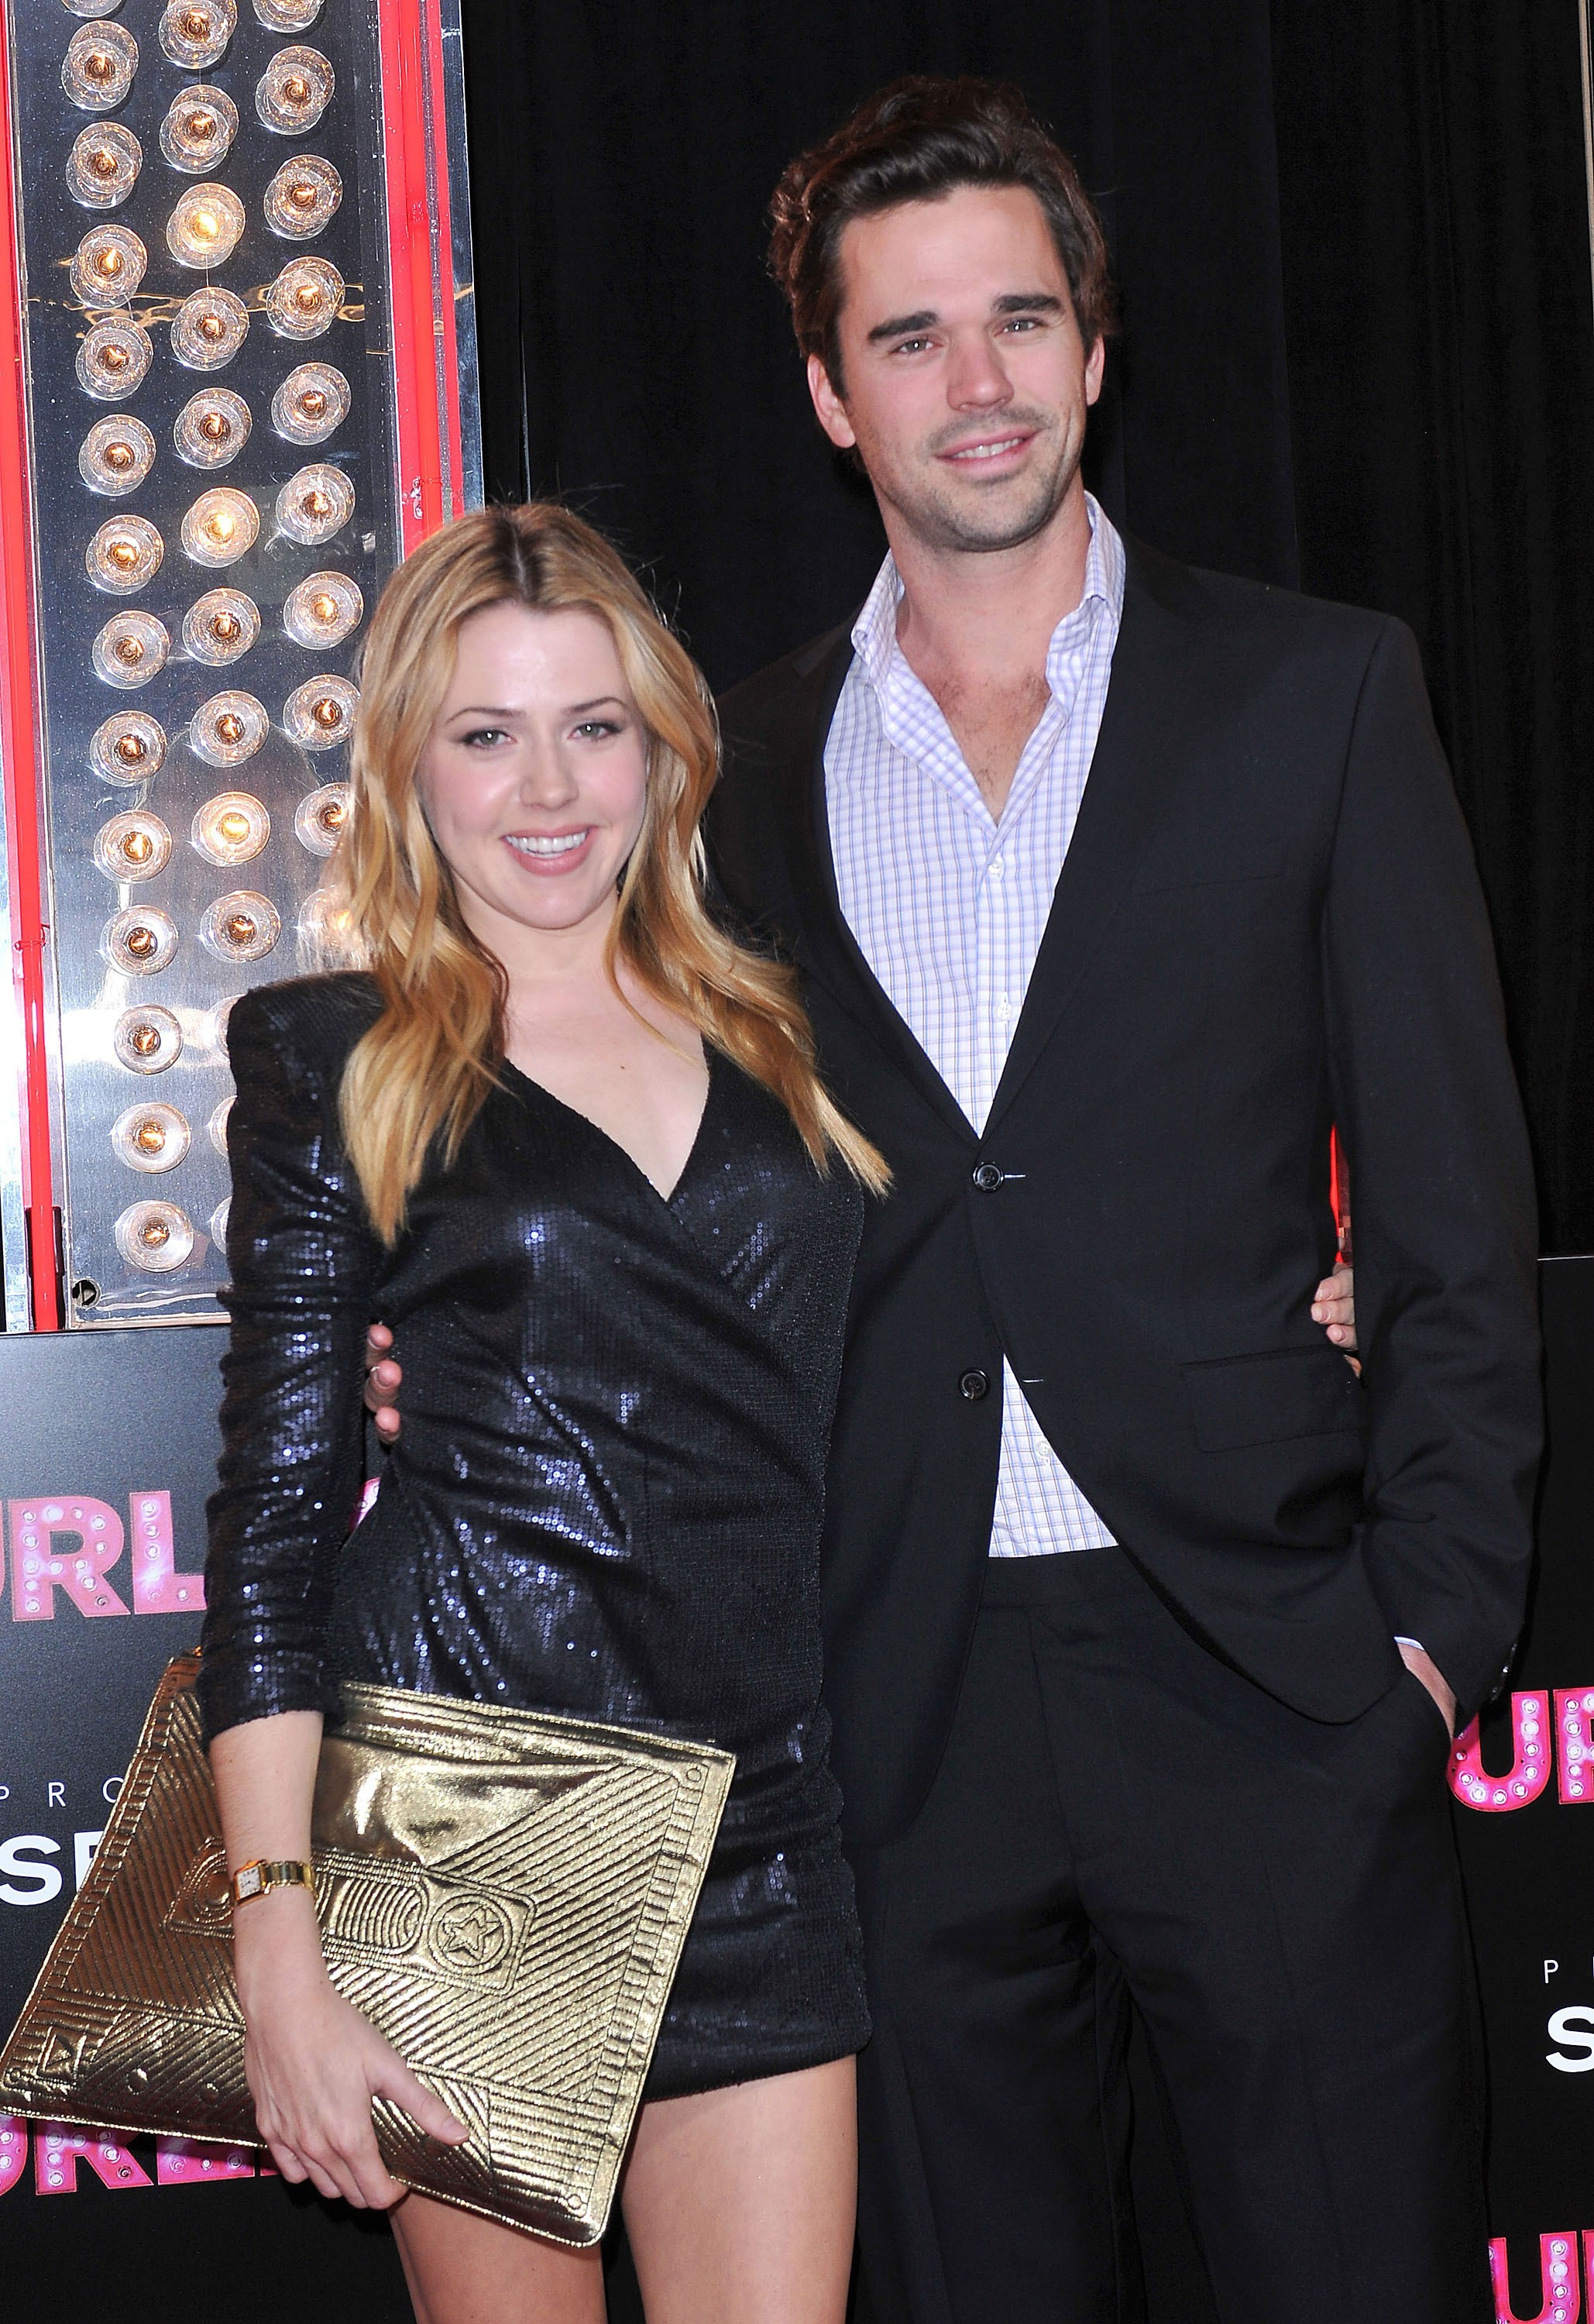 Majandra Delfino and David Walton